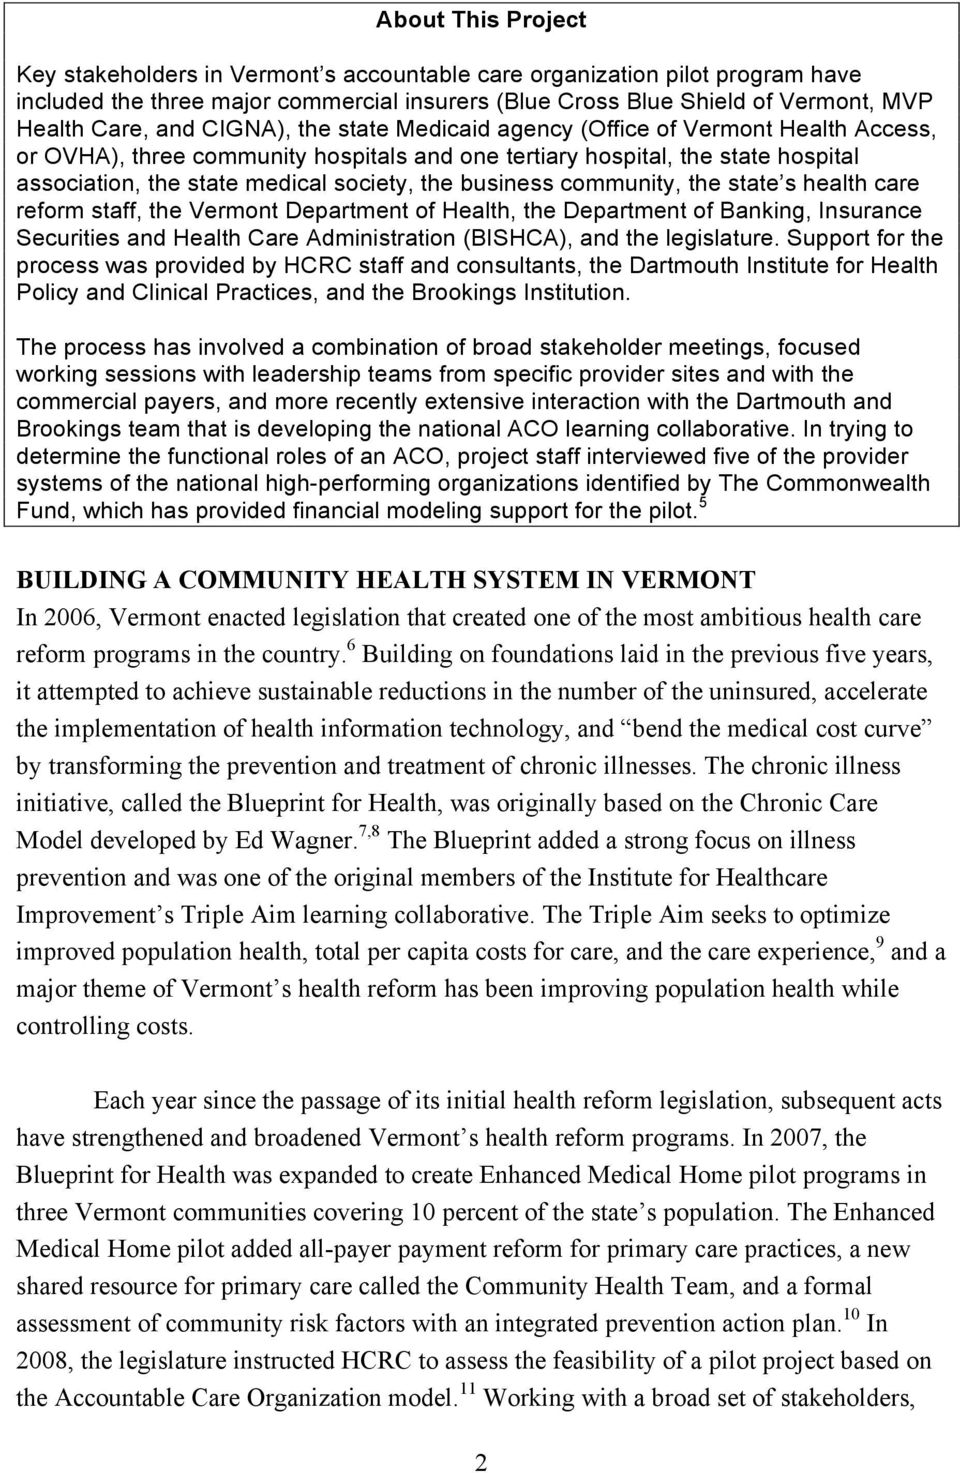 business community, the state s health care reform staff, the Vermont Department of Health, the Department of Banking, Insurance Securities and Health Care Administration (BISHCA), and the